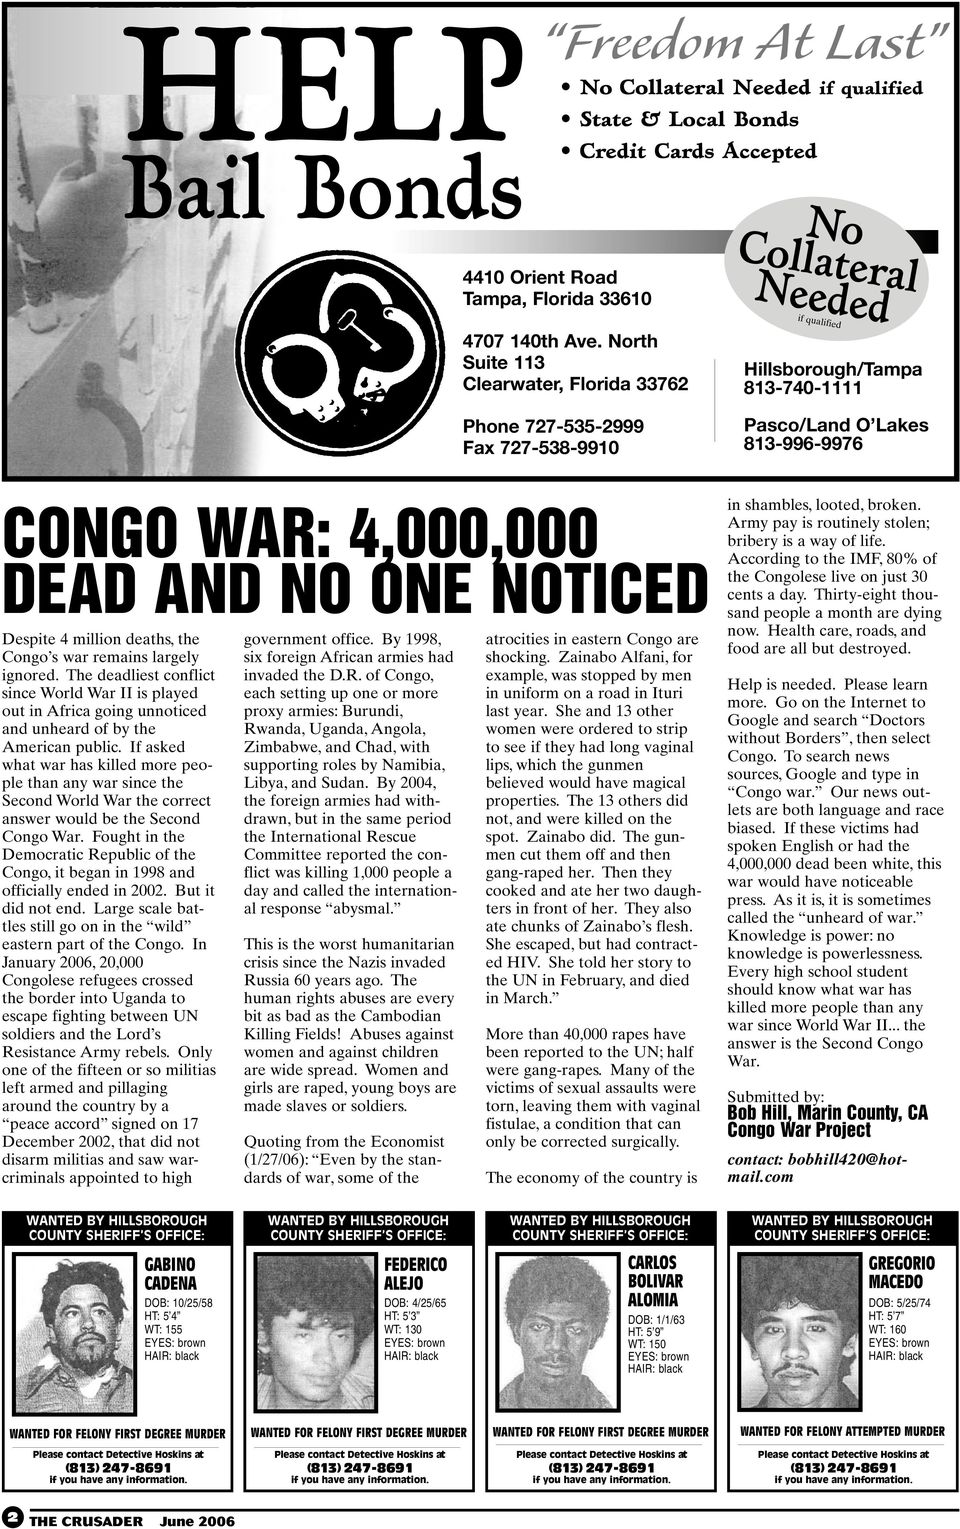 DEAD AND NO ONE NOTICED Despite 4 million deaths, the Congo s war remains largely ignored.